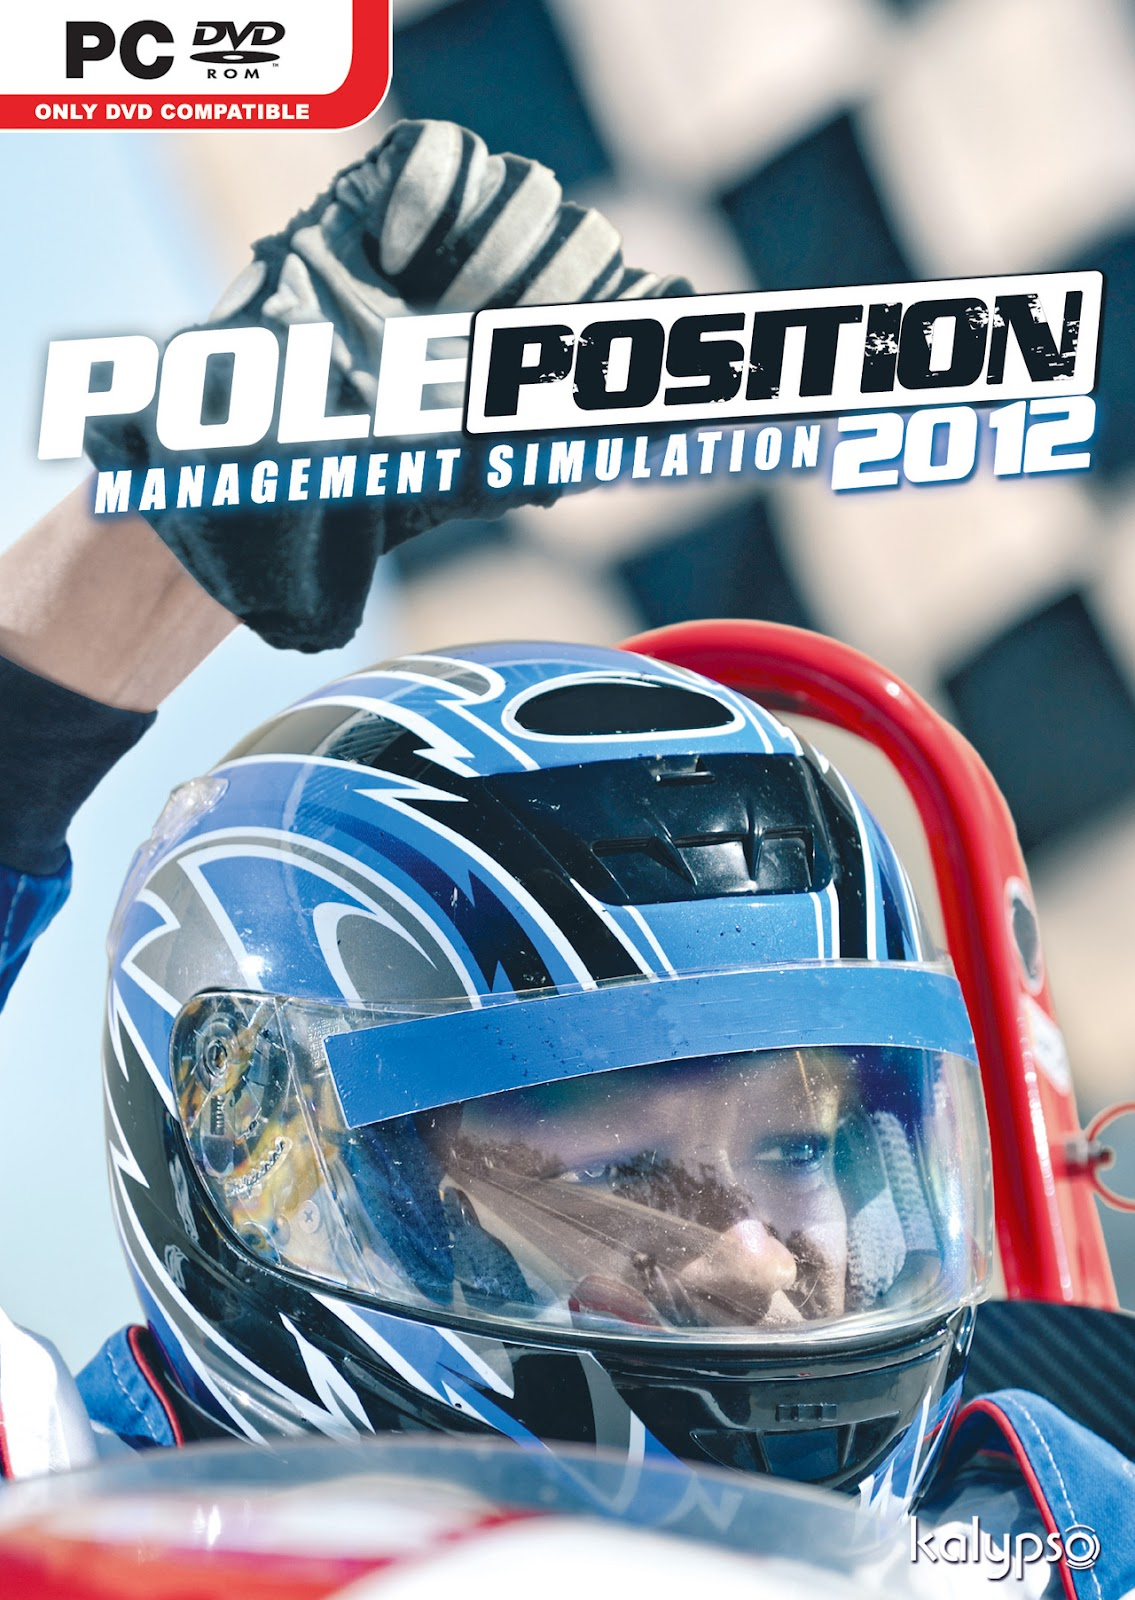 Download Game Pole Position 2012 – FLT Full crack Fshare